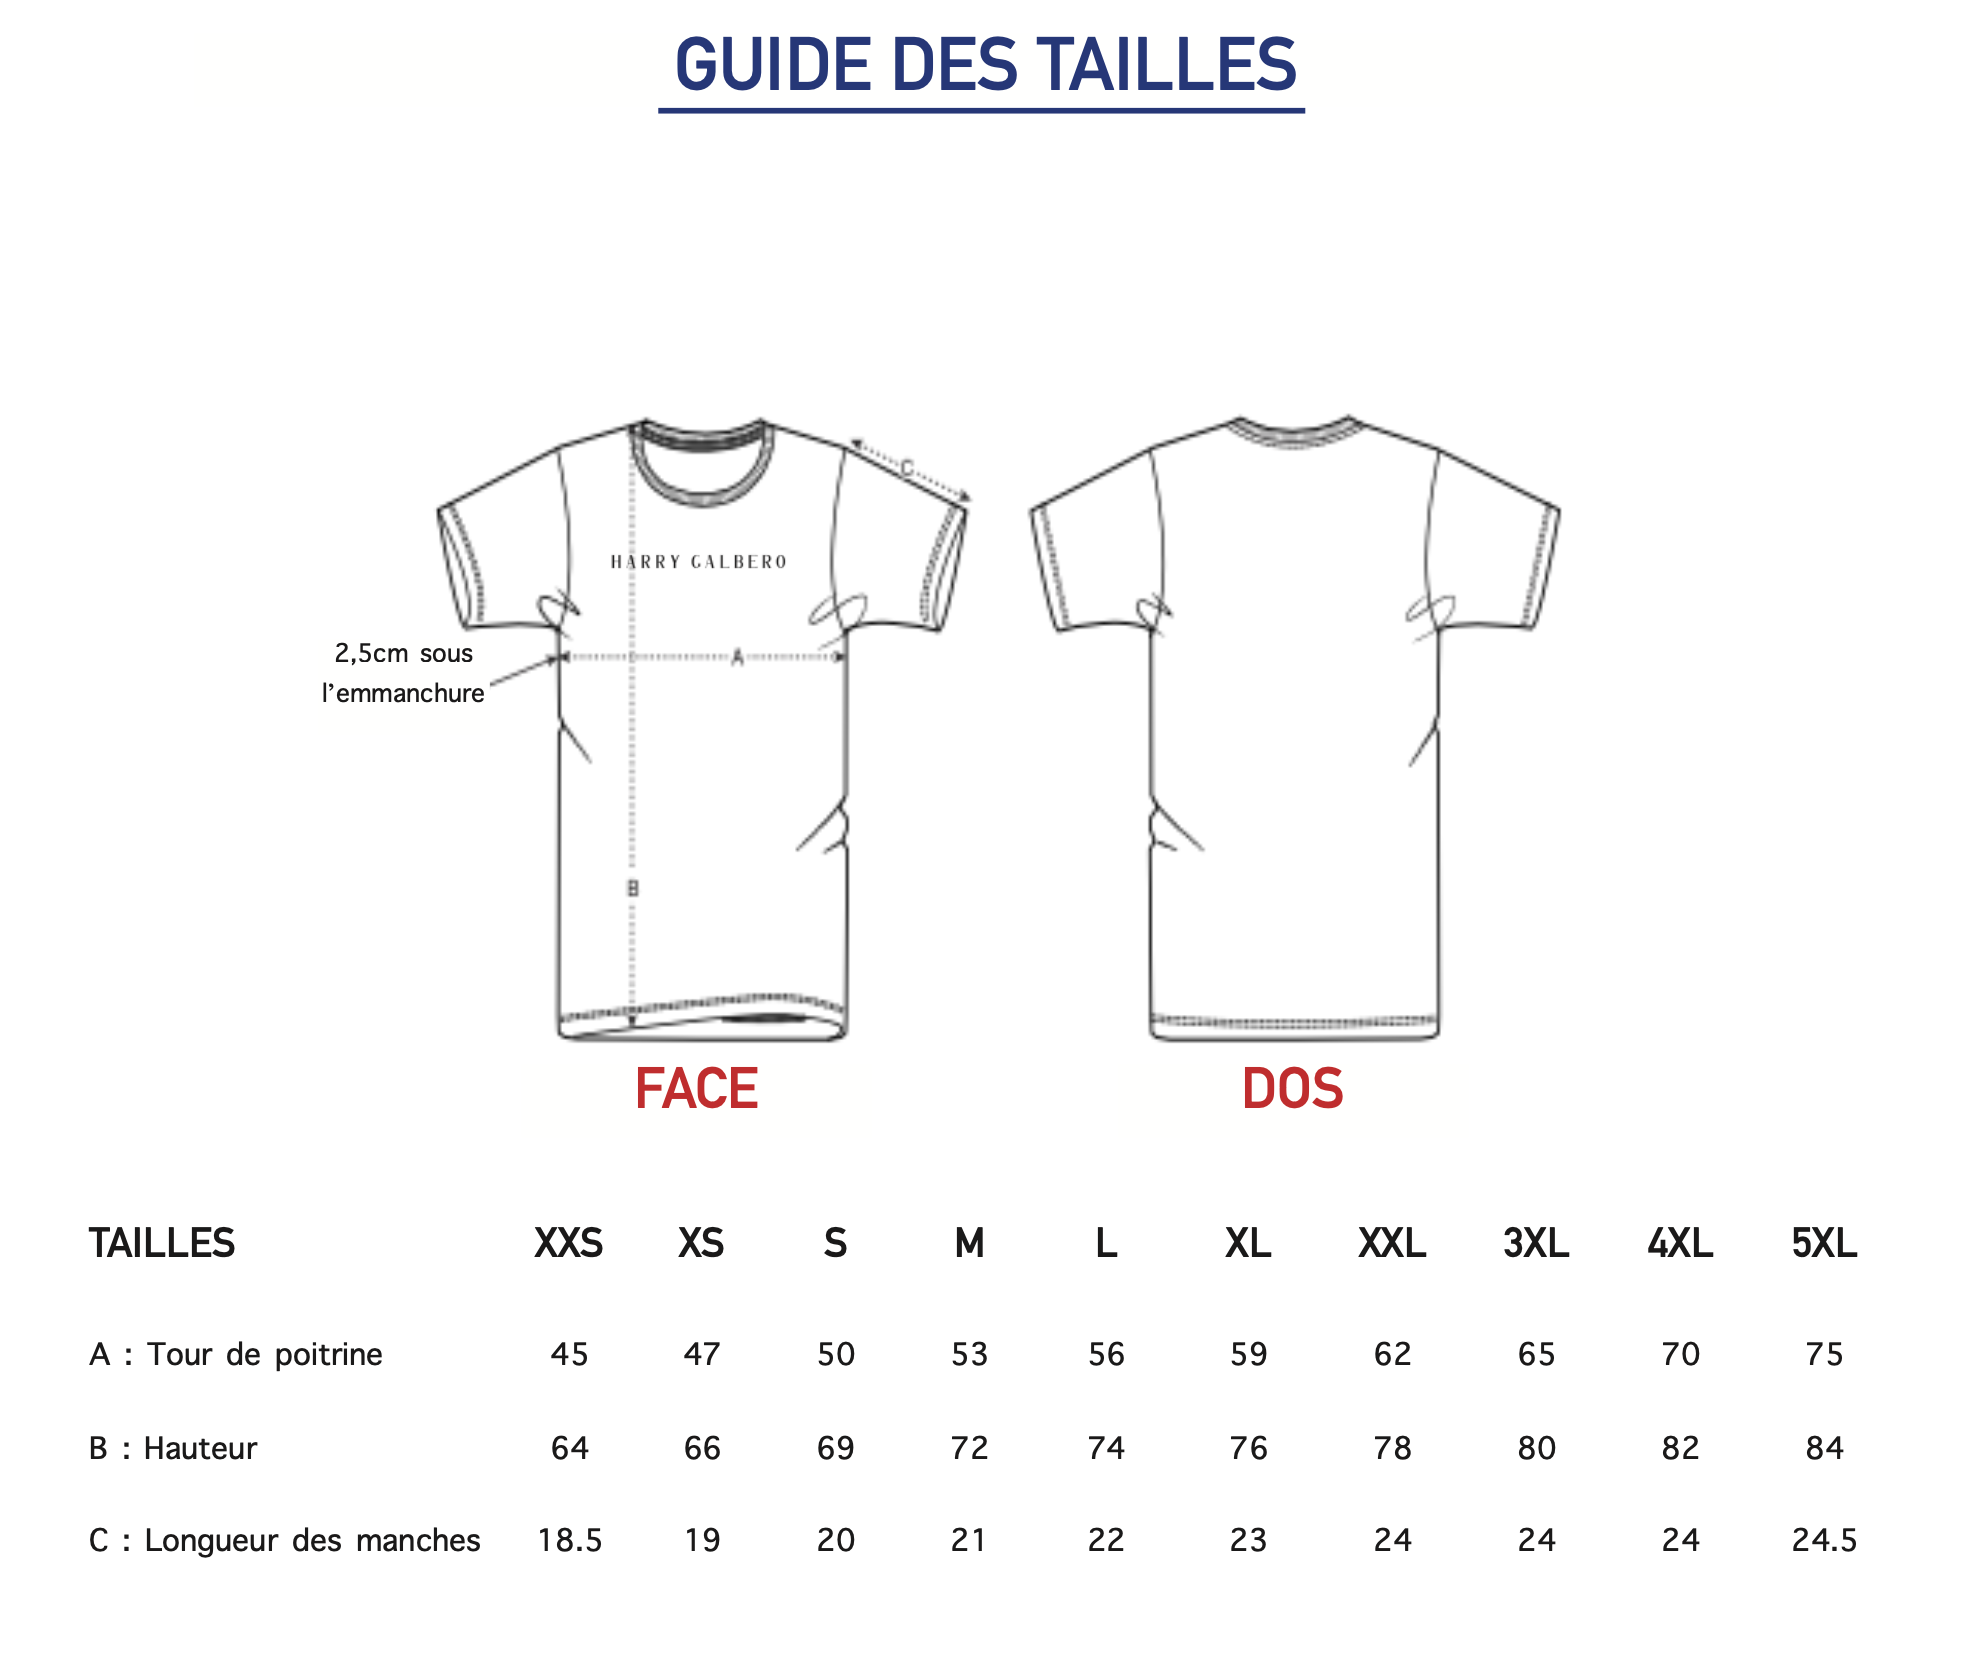 Guide des tailles T-shirt Summer Harry Galbero